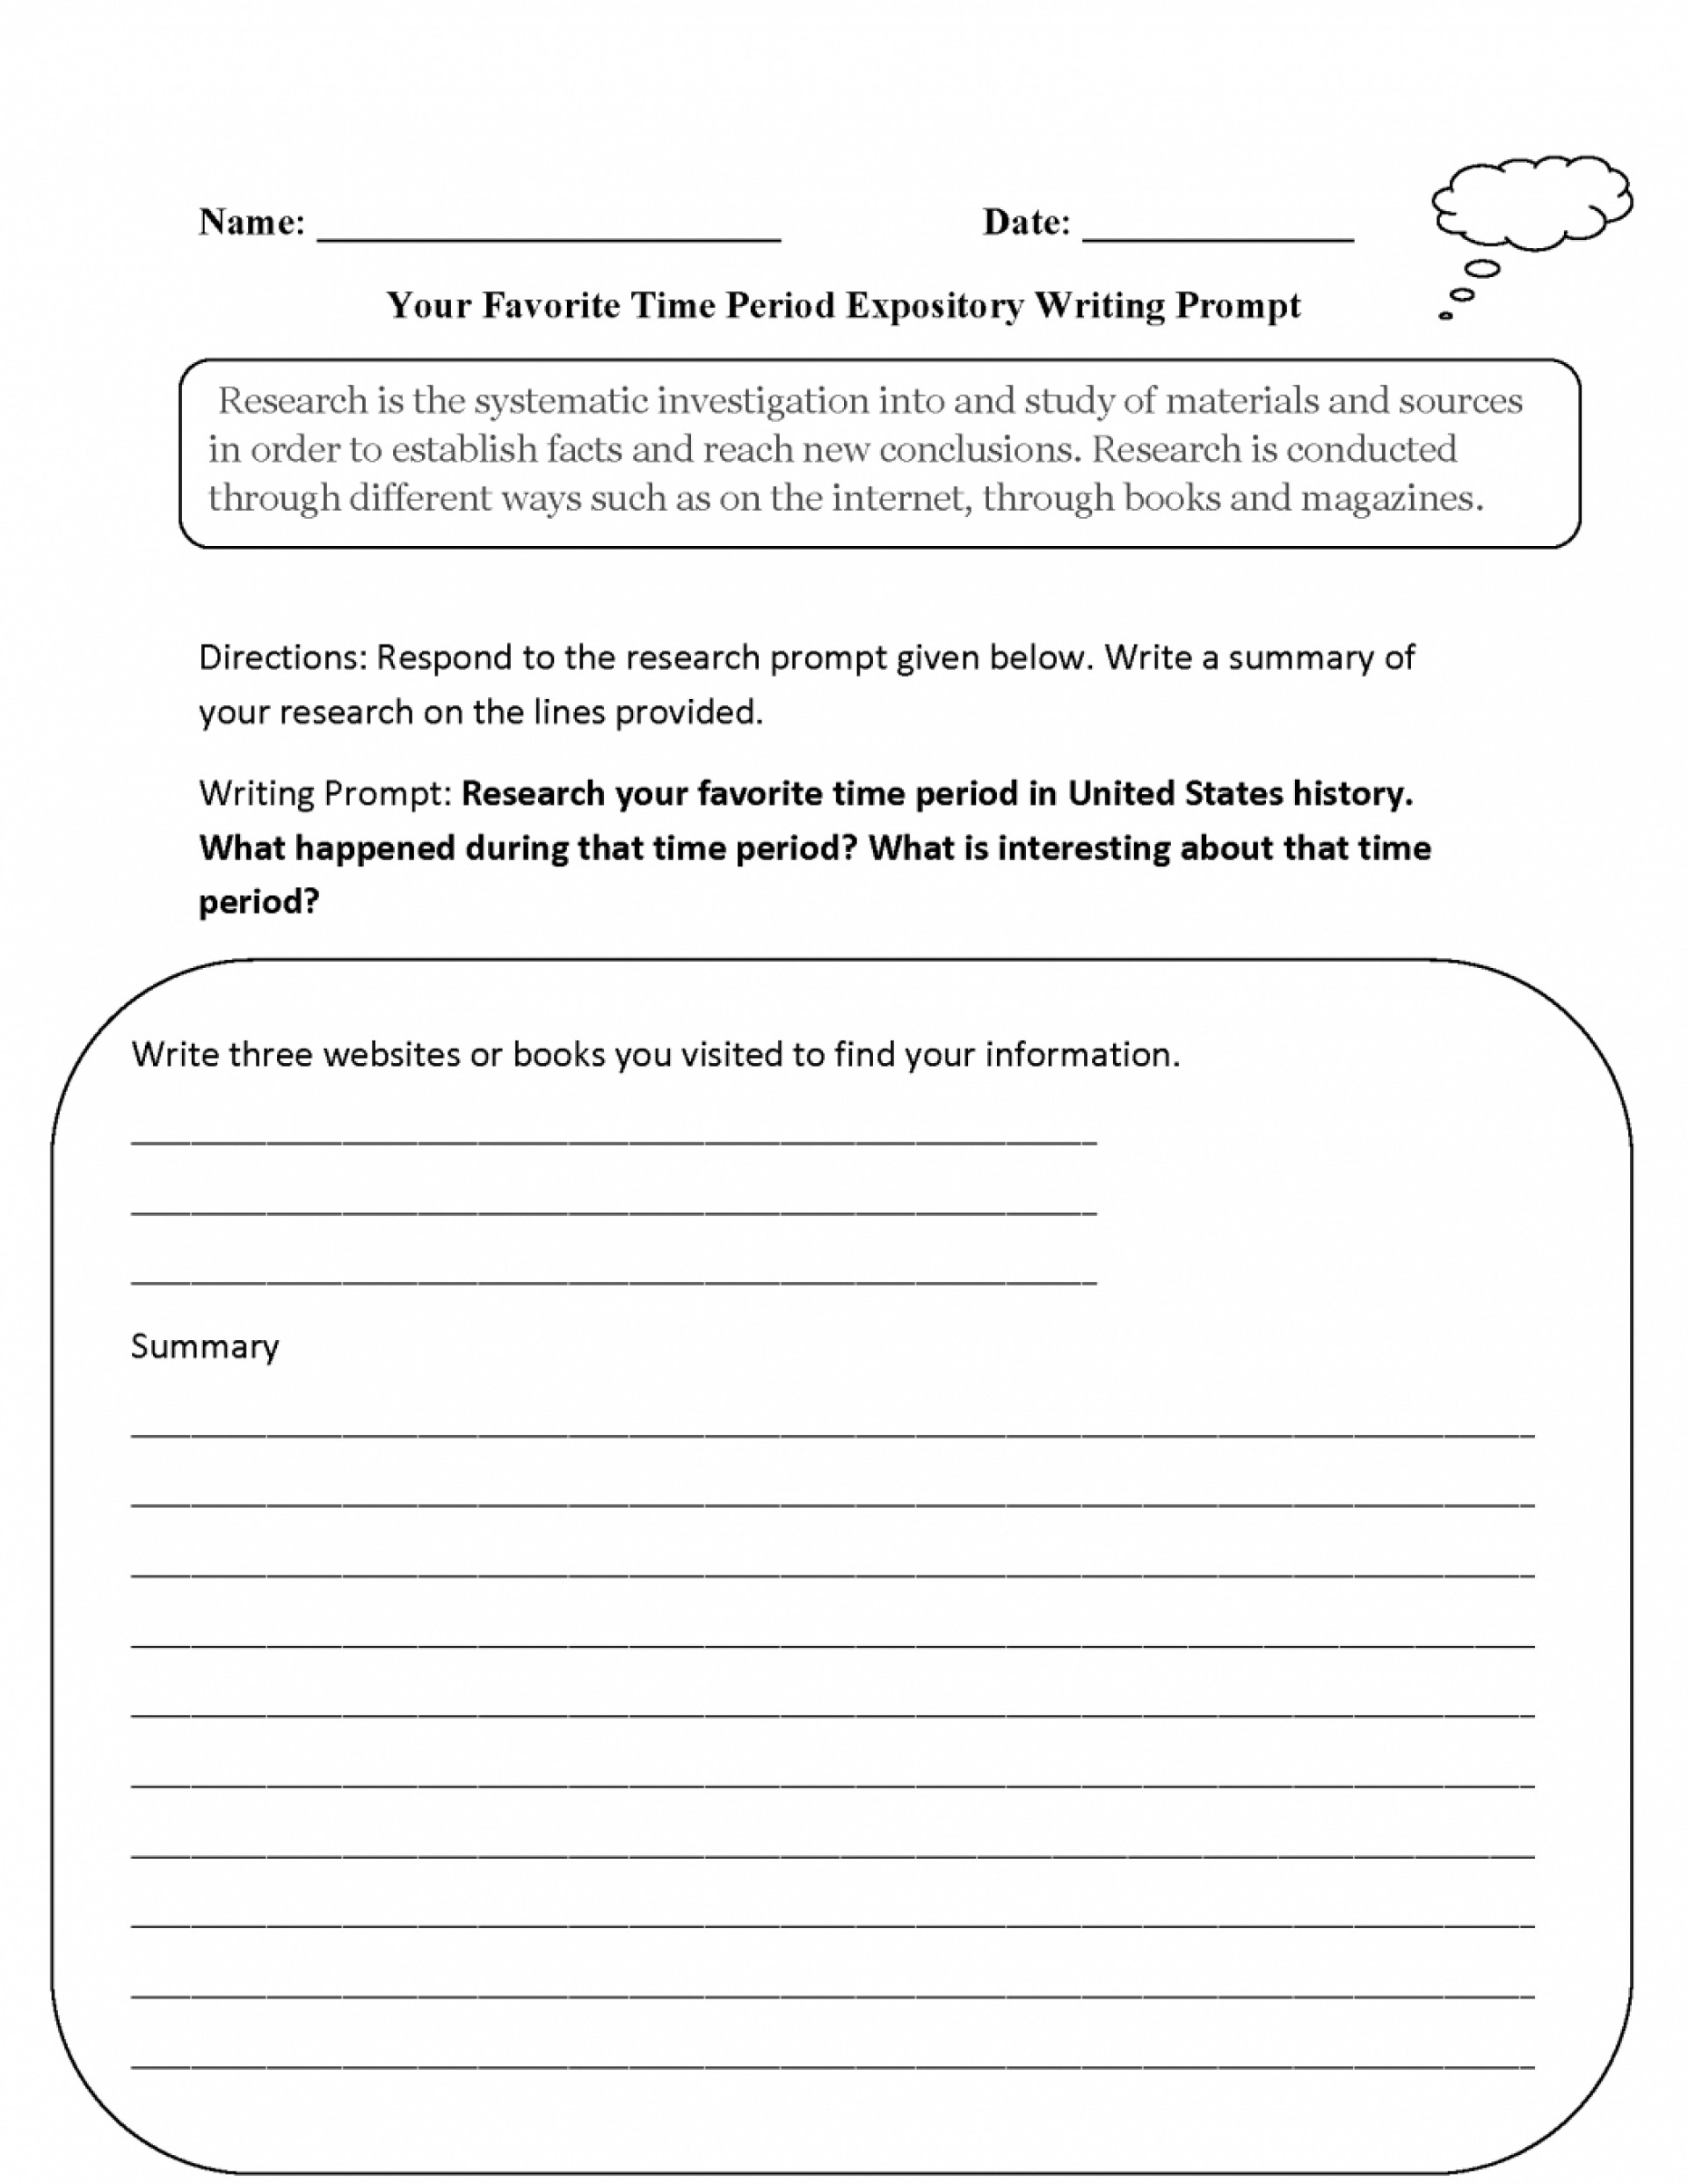 018 Essay Example Good Informative Topics Prompts Favorite Time Period Expository Writing P To Write An On The Topic Of Immigration Remarkable 2018 For High School Prompt 4th Grade 1920